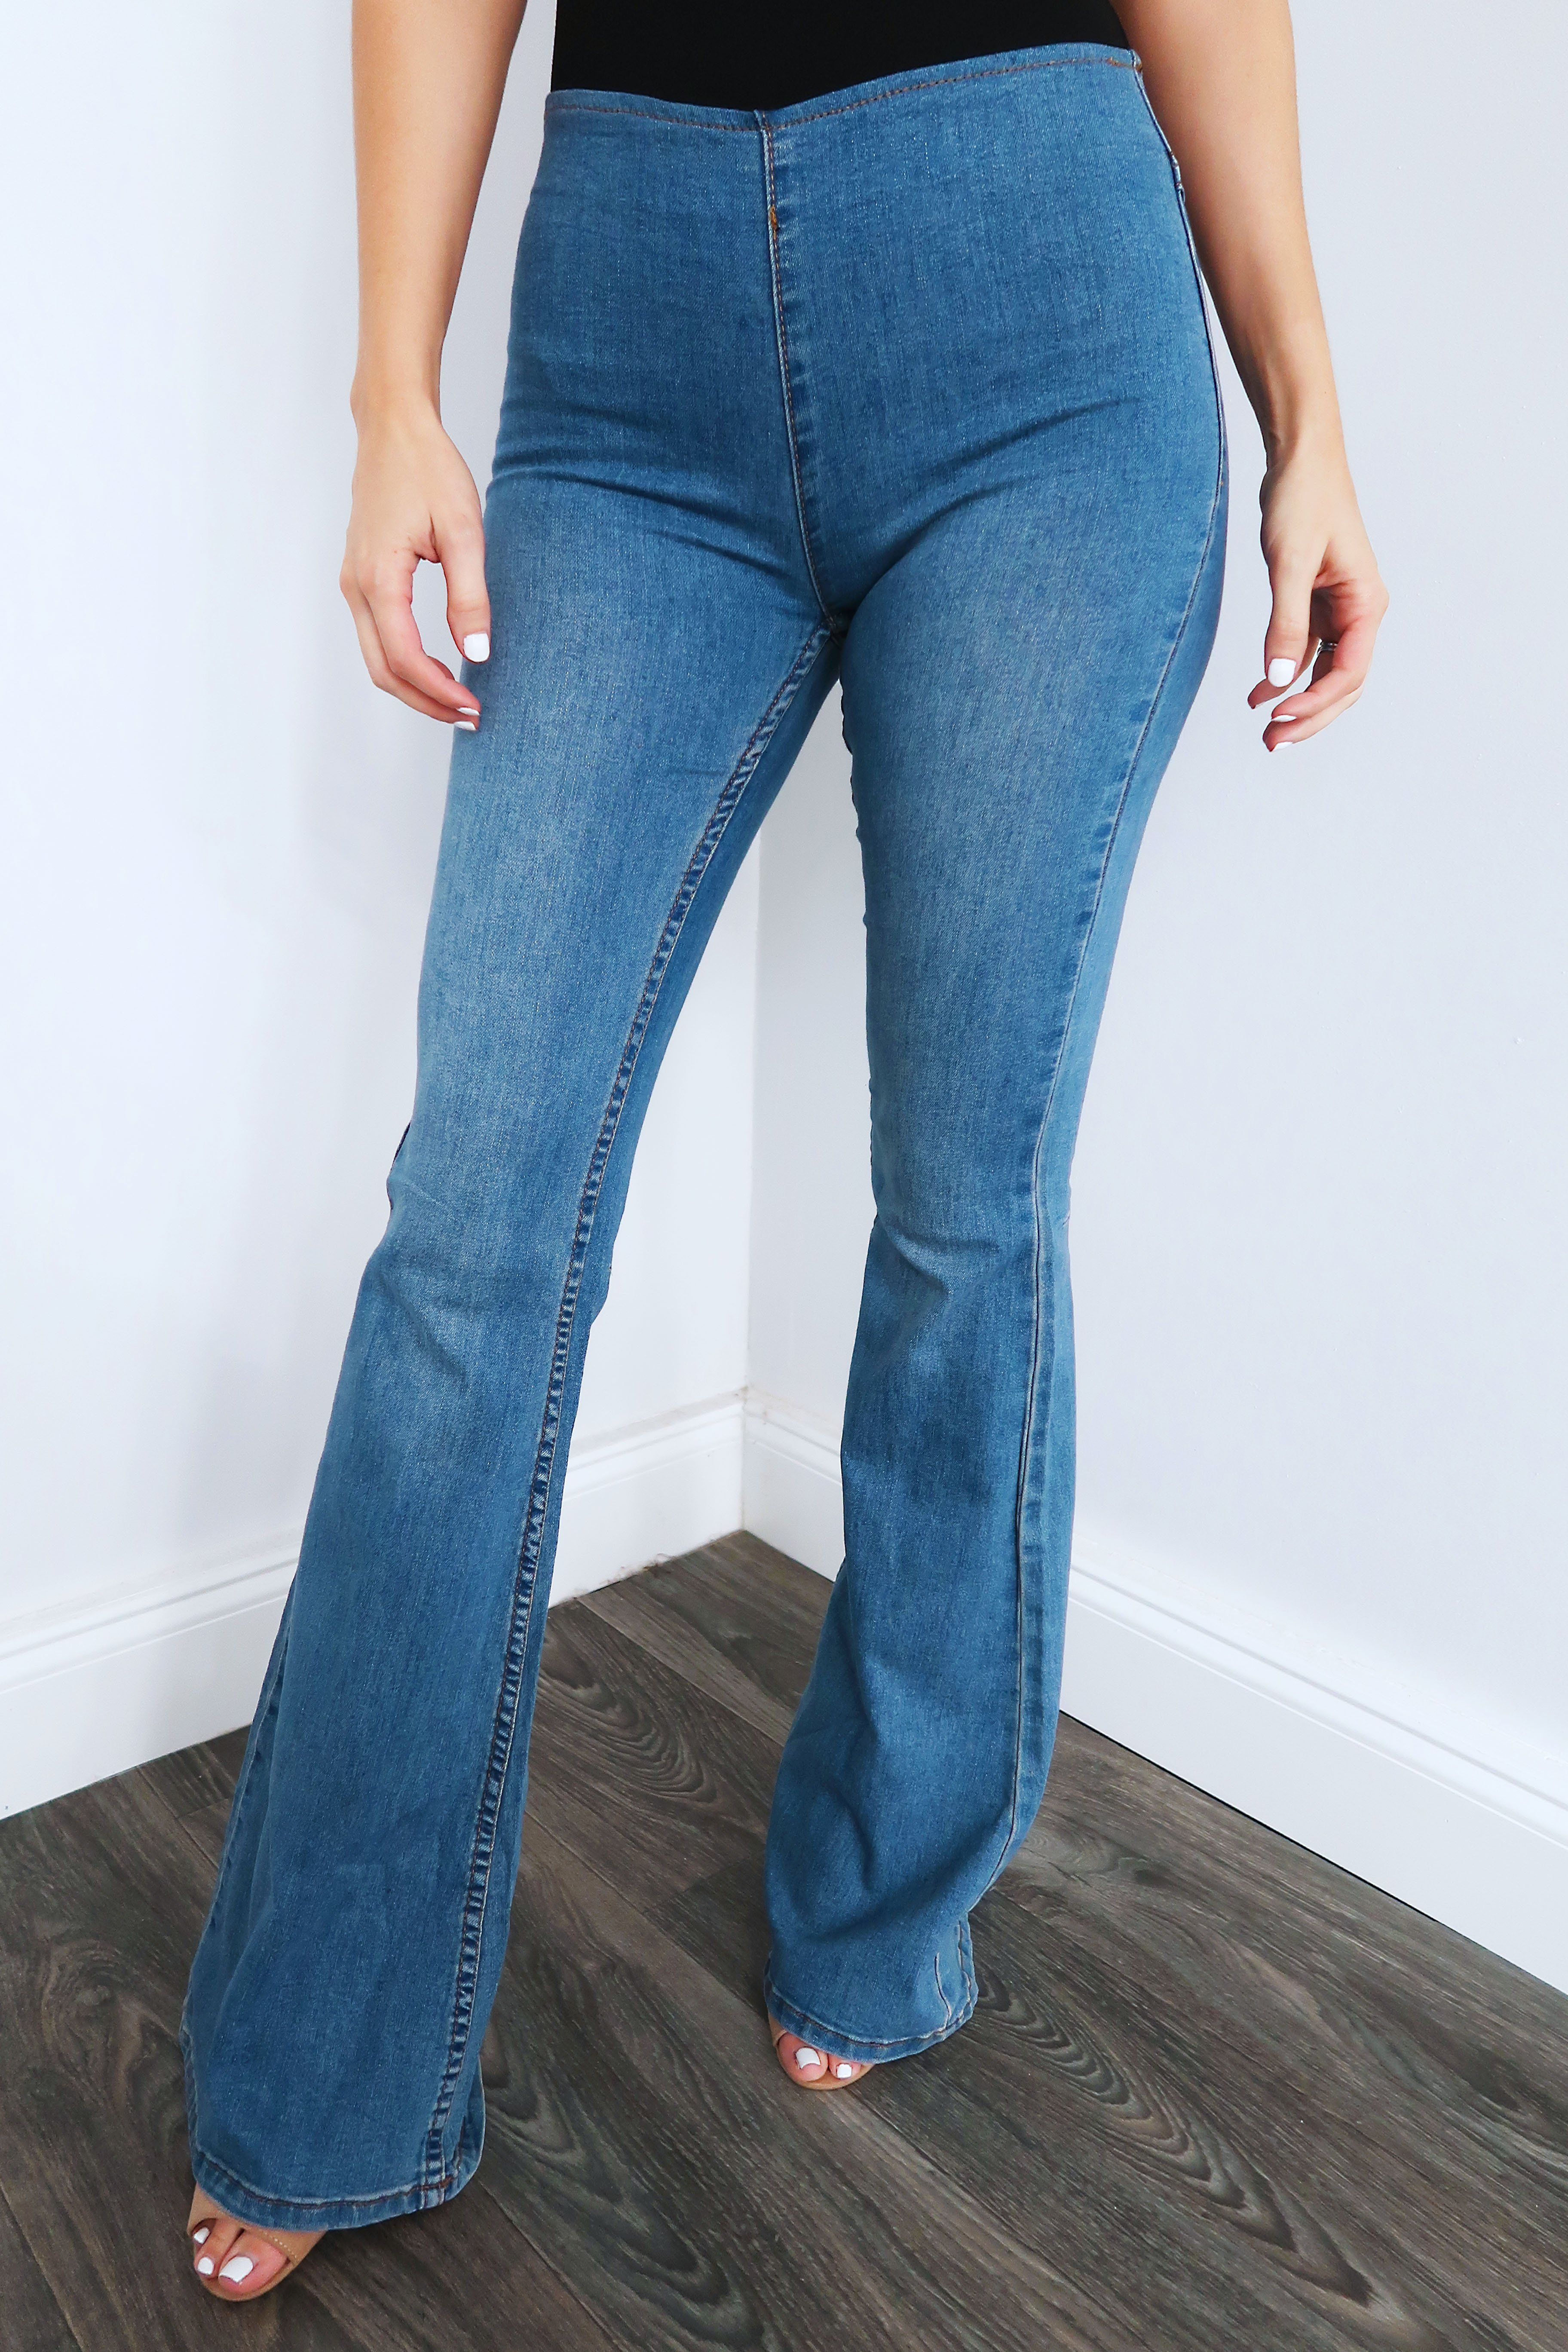 Share To Save 10 On Your Order Instantly Ring My Bell Jeans Denim Bell Jeans Flare Leg Jeans Denim